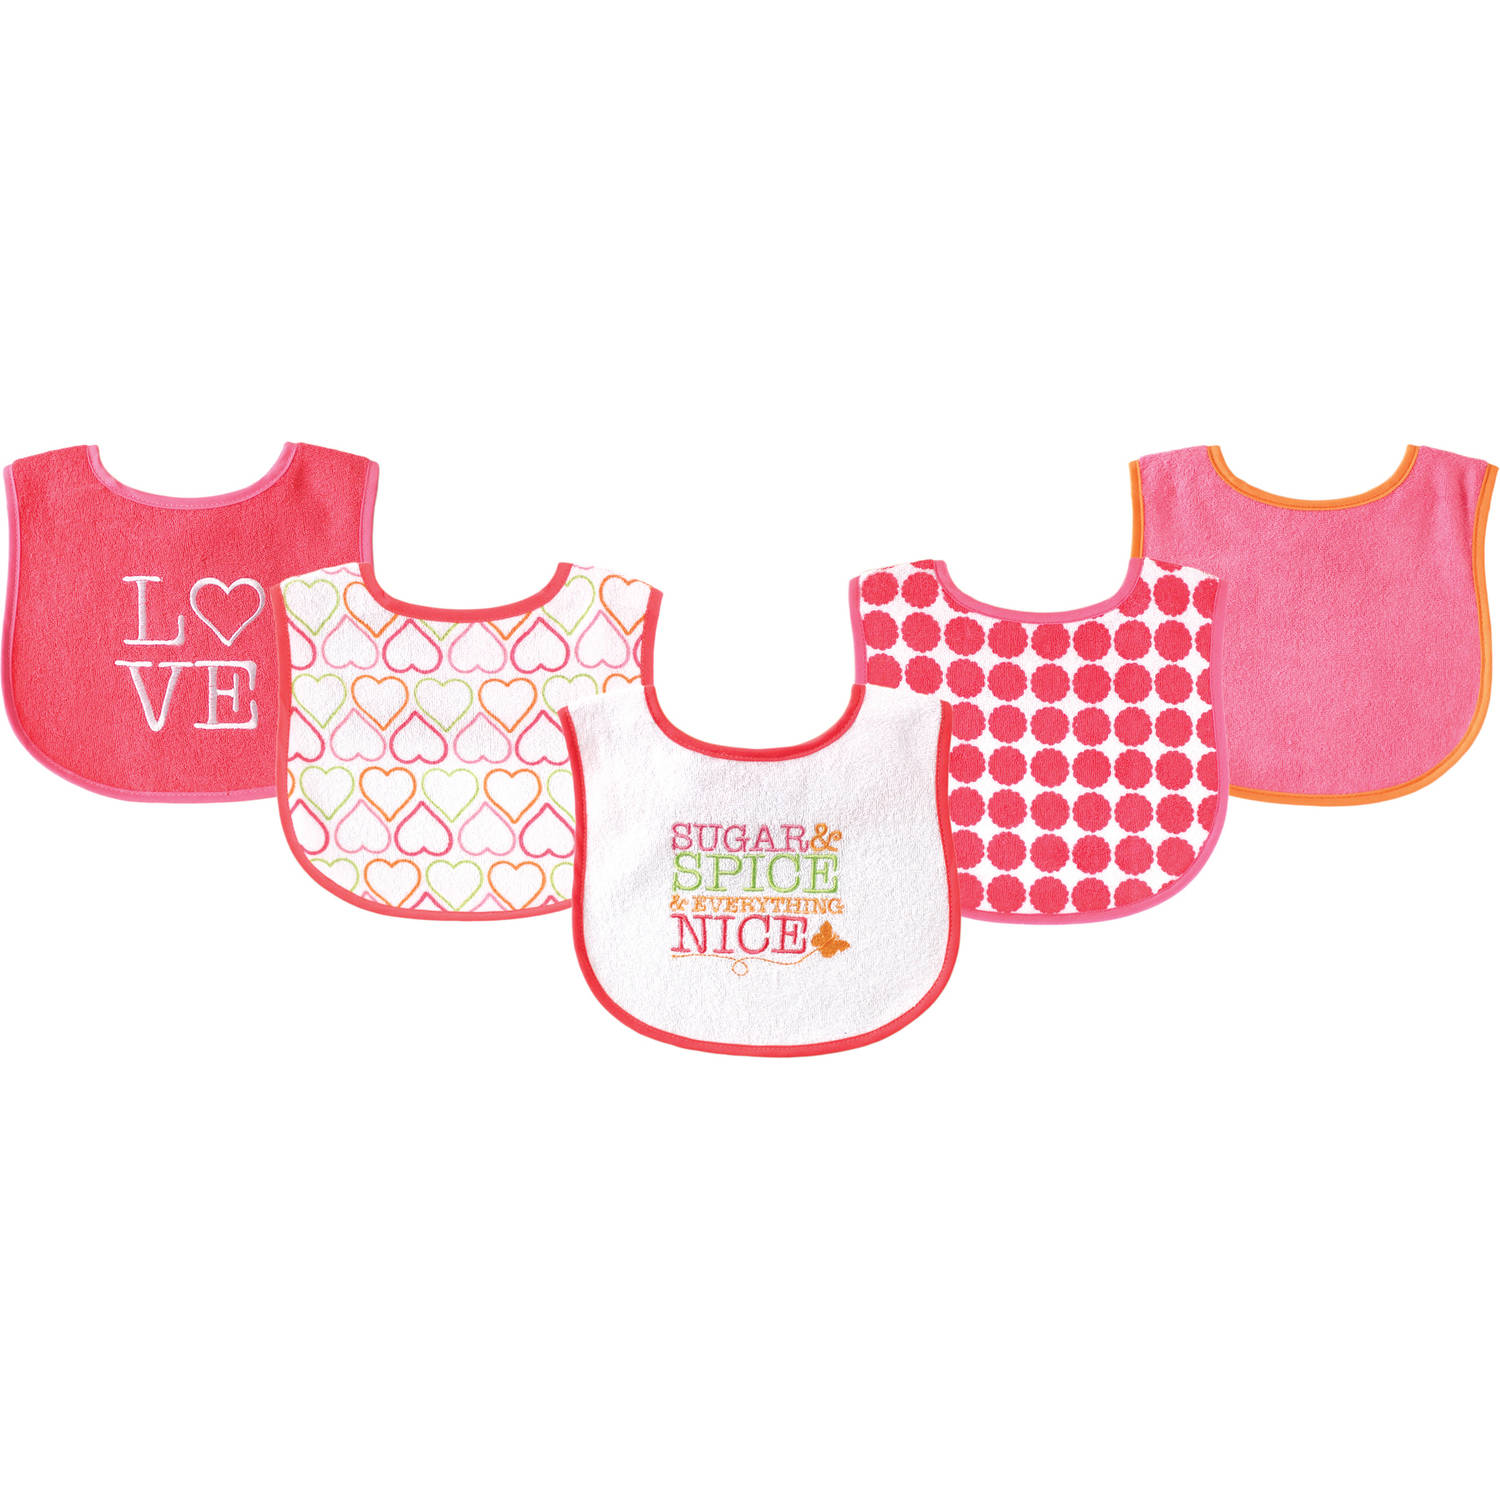 Luvable Friends Applique/Print Bib, Girl, 5pk, Sugar